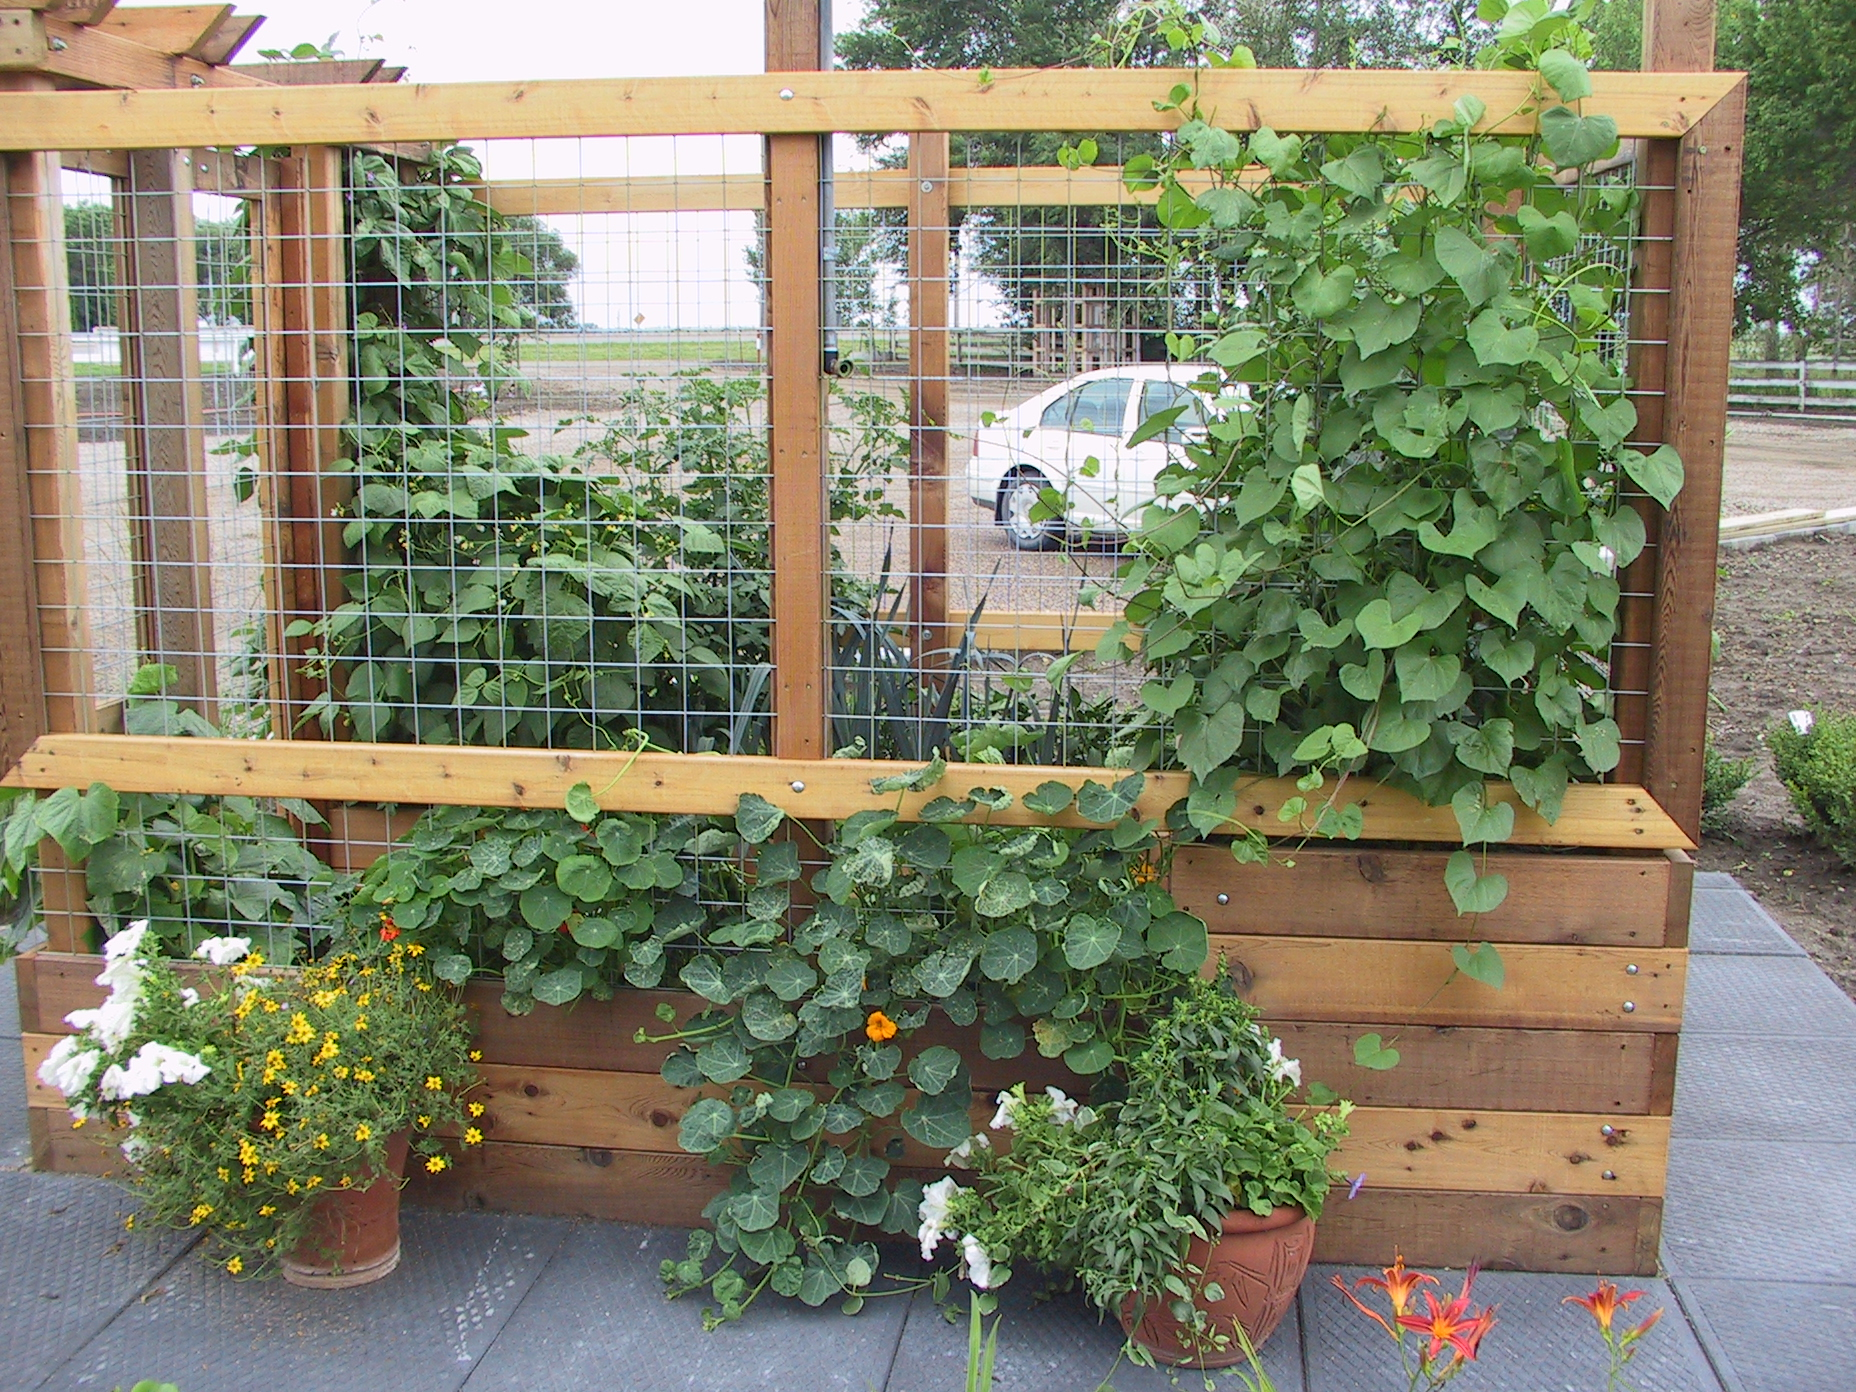 Vegetables Gardens Can Be Beautiful Too Hilgersom Inc